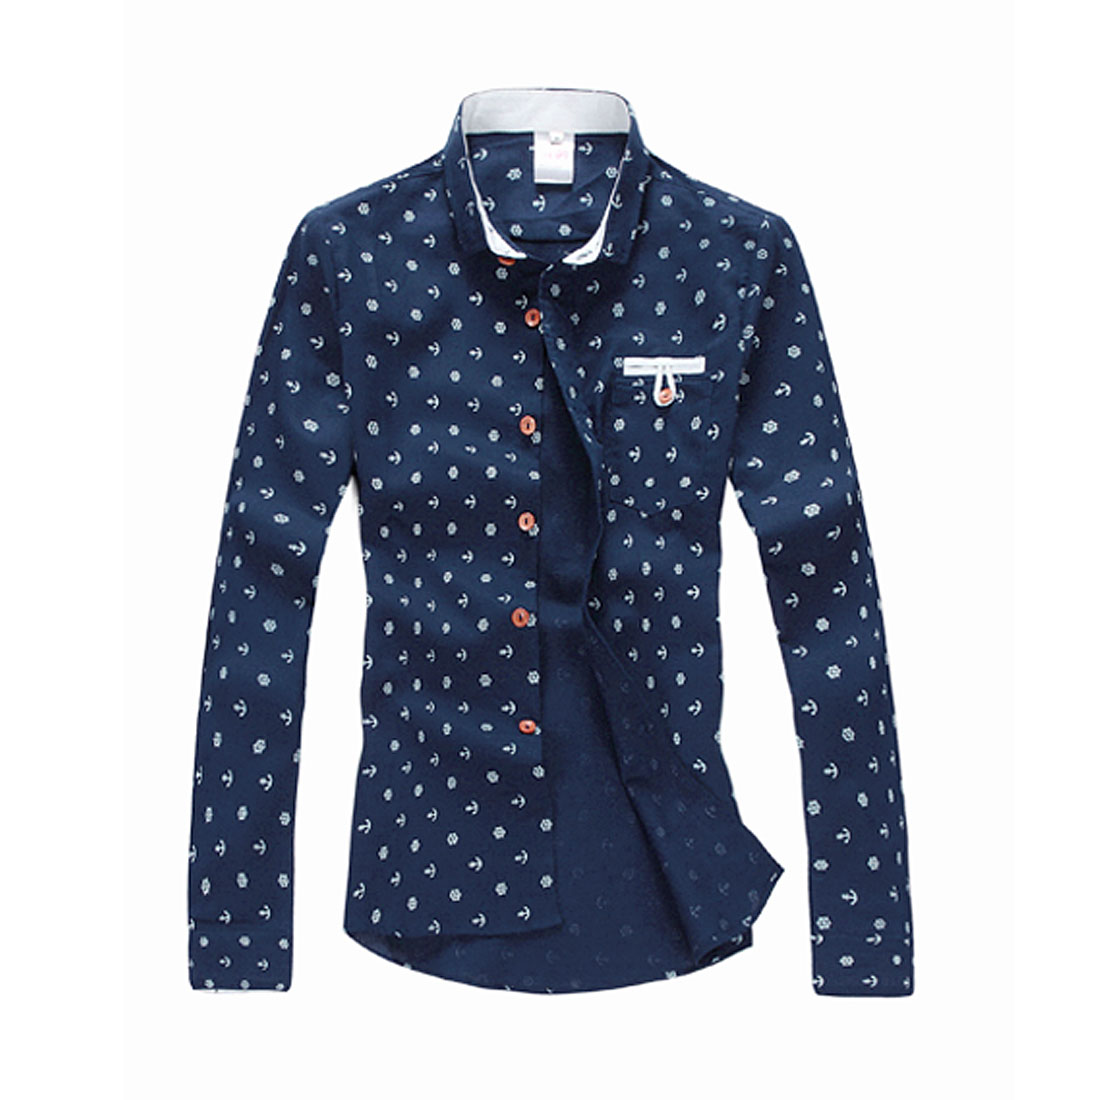 Mens Korea Fashion Autumn Long Sleeve Dark Blue Printed Shirt S